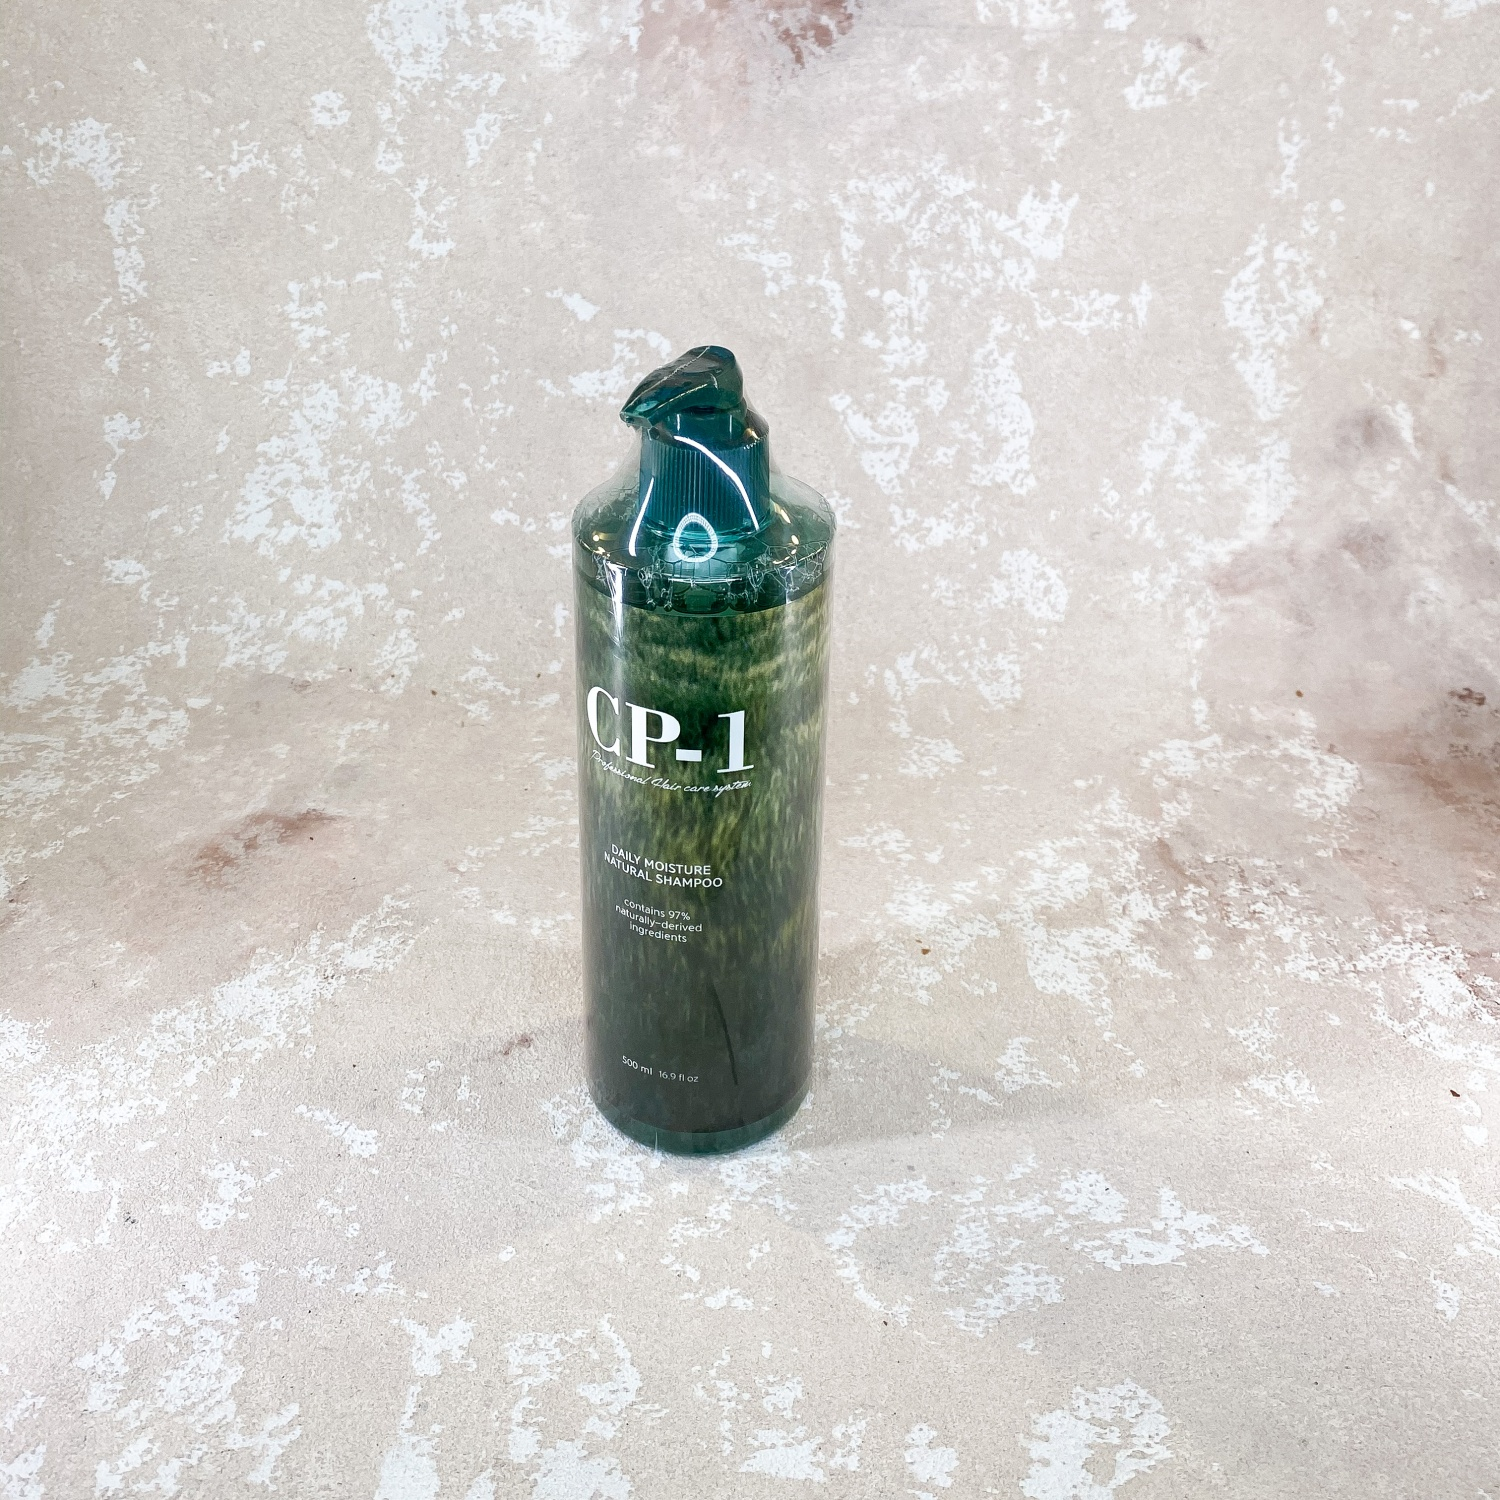 CP-1 Daily Moisture Natural Shampoo